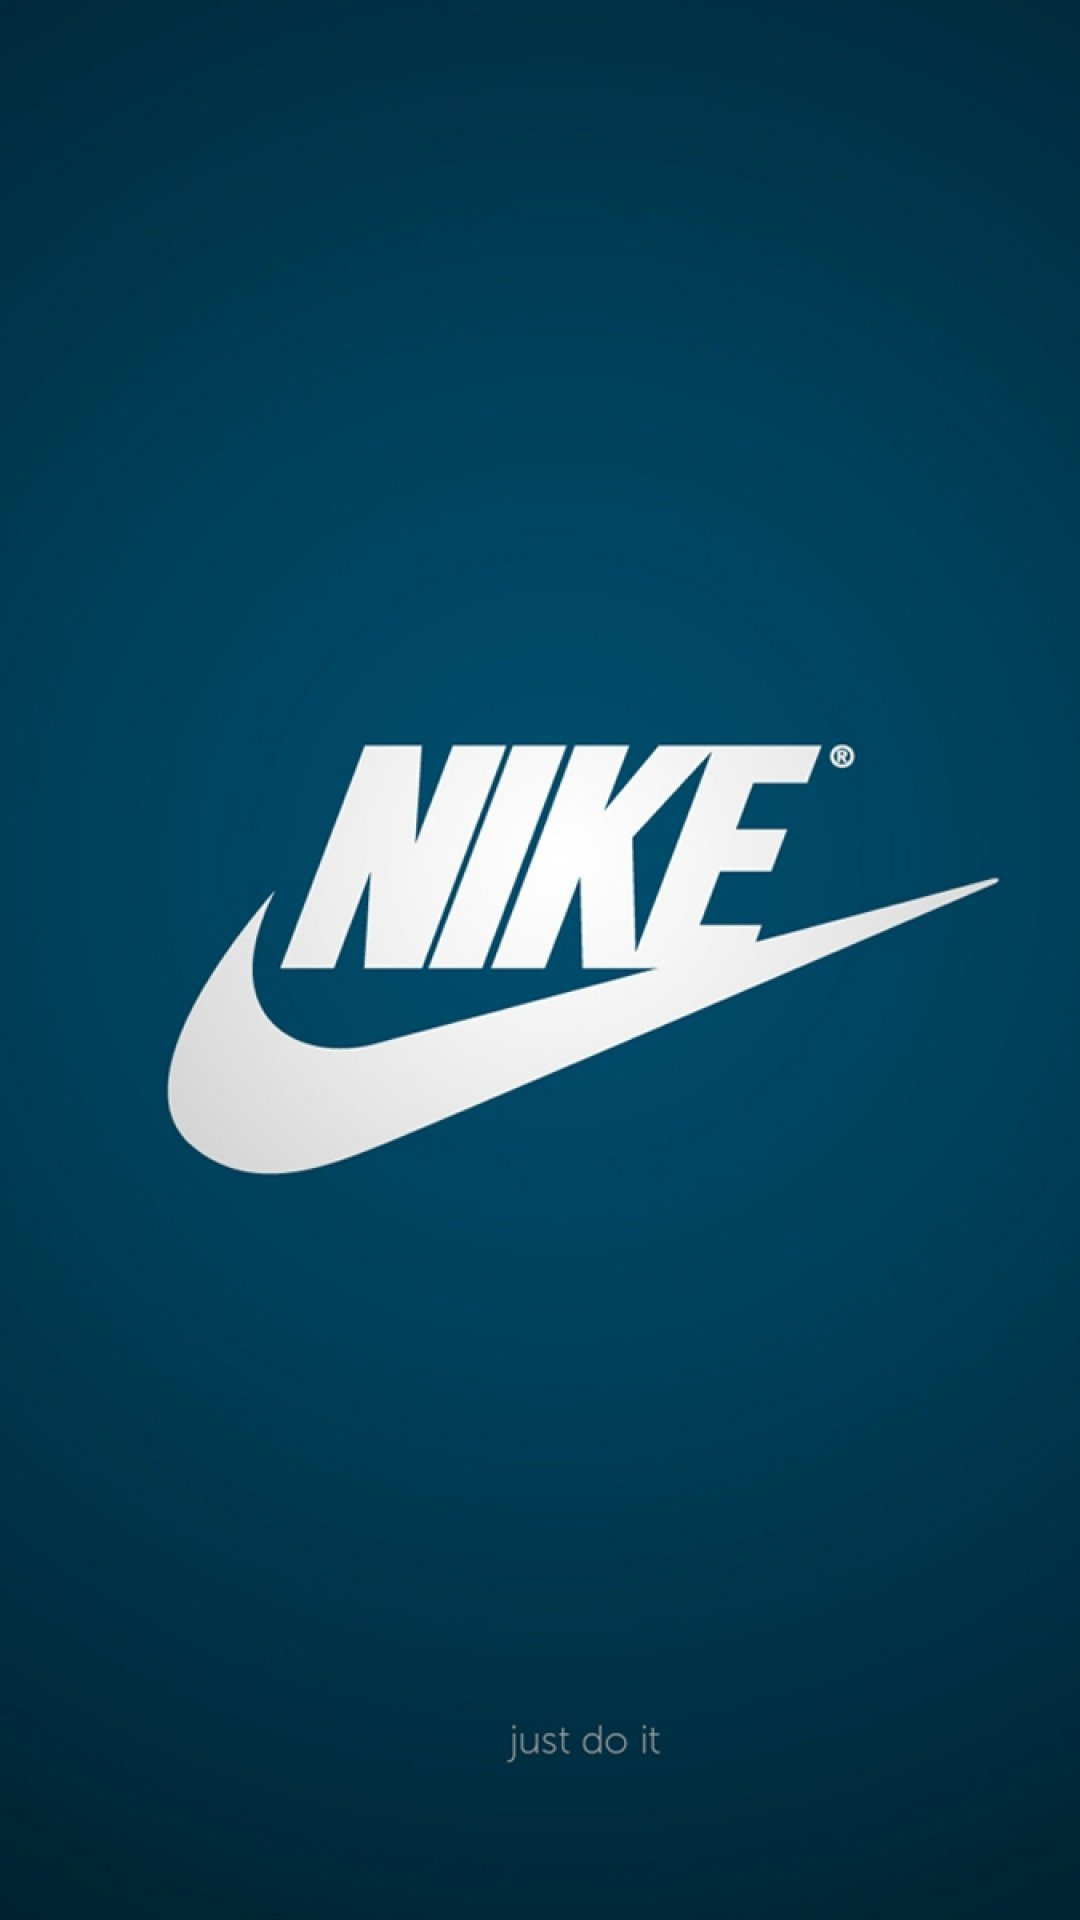 Nike Iphone Wallpaper Hd Popular Desktop Wallpaper